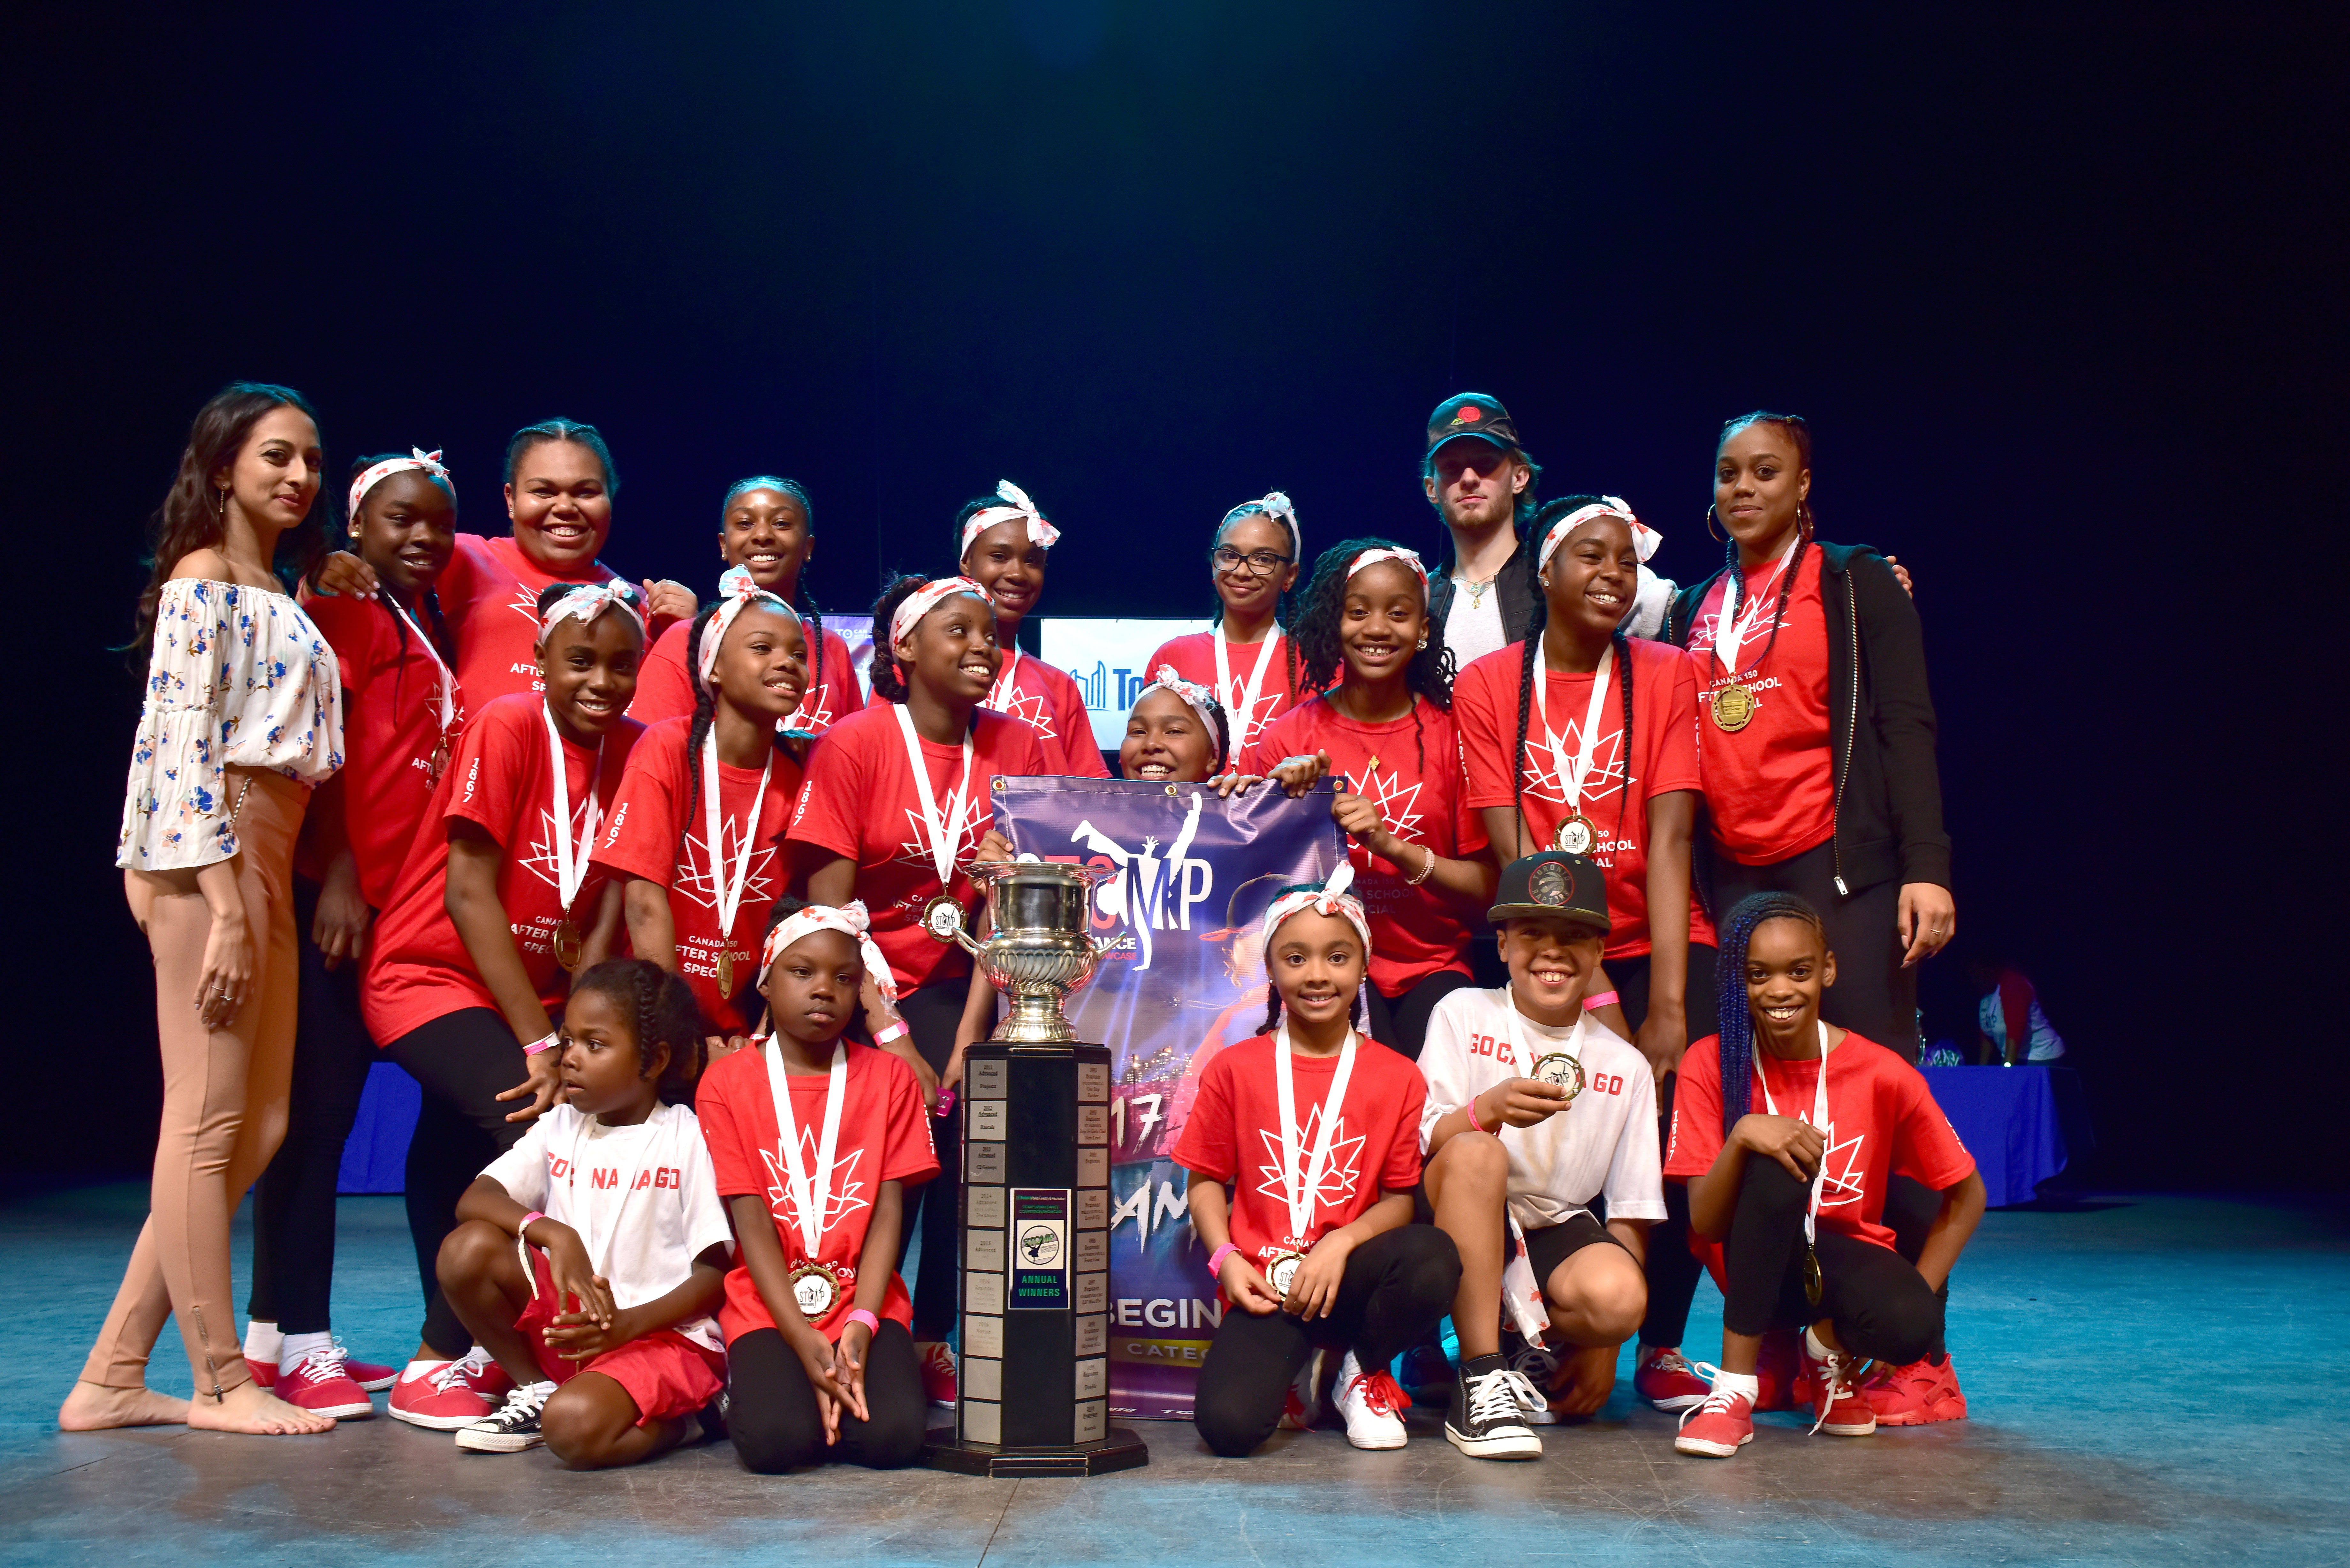 STOMP 2017 Beginner dance group winners